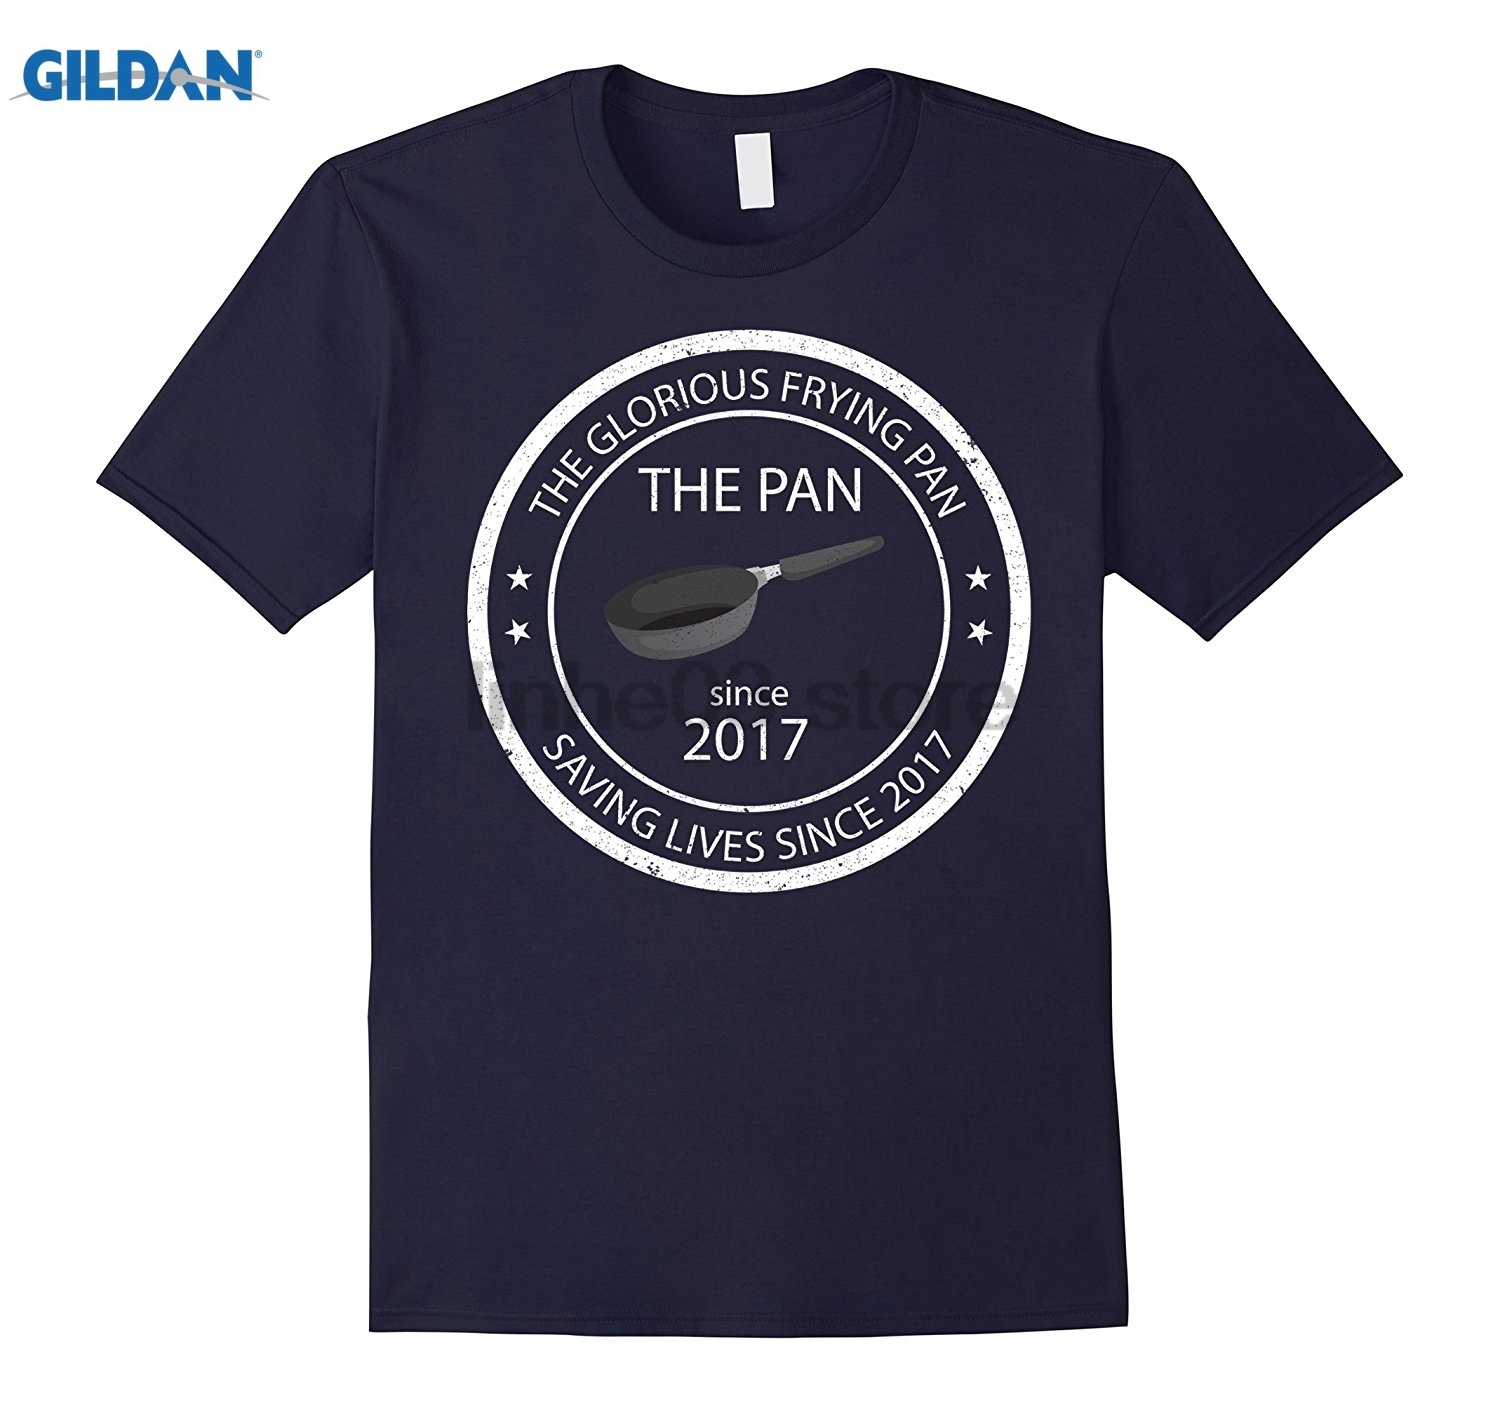 GILDAN The Frying Pan Solo Chicken PUBG Gaming Tshirt Hot Womens T-shirt Mothers Day Ms. T-shirt